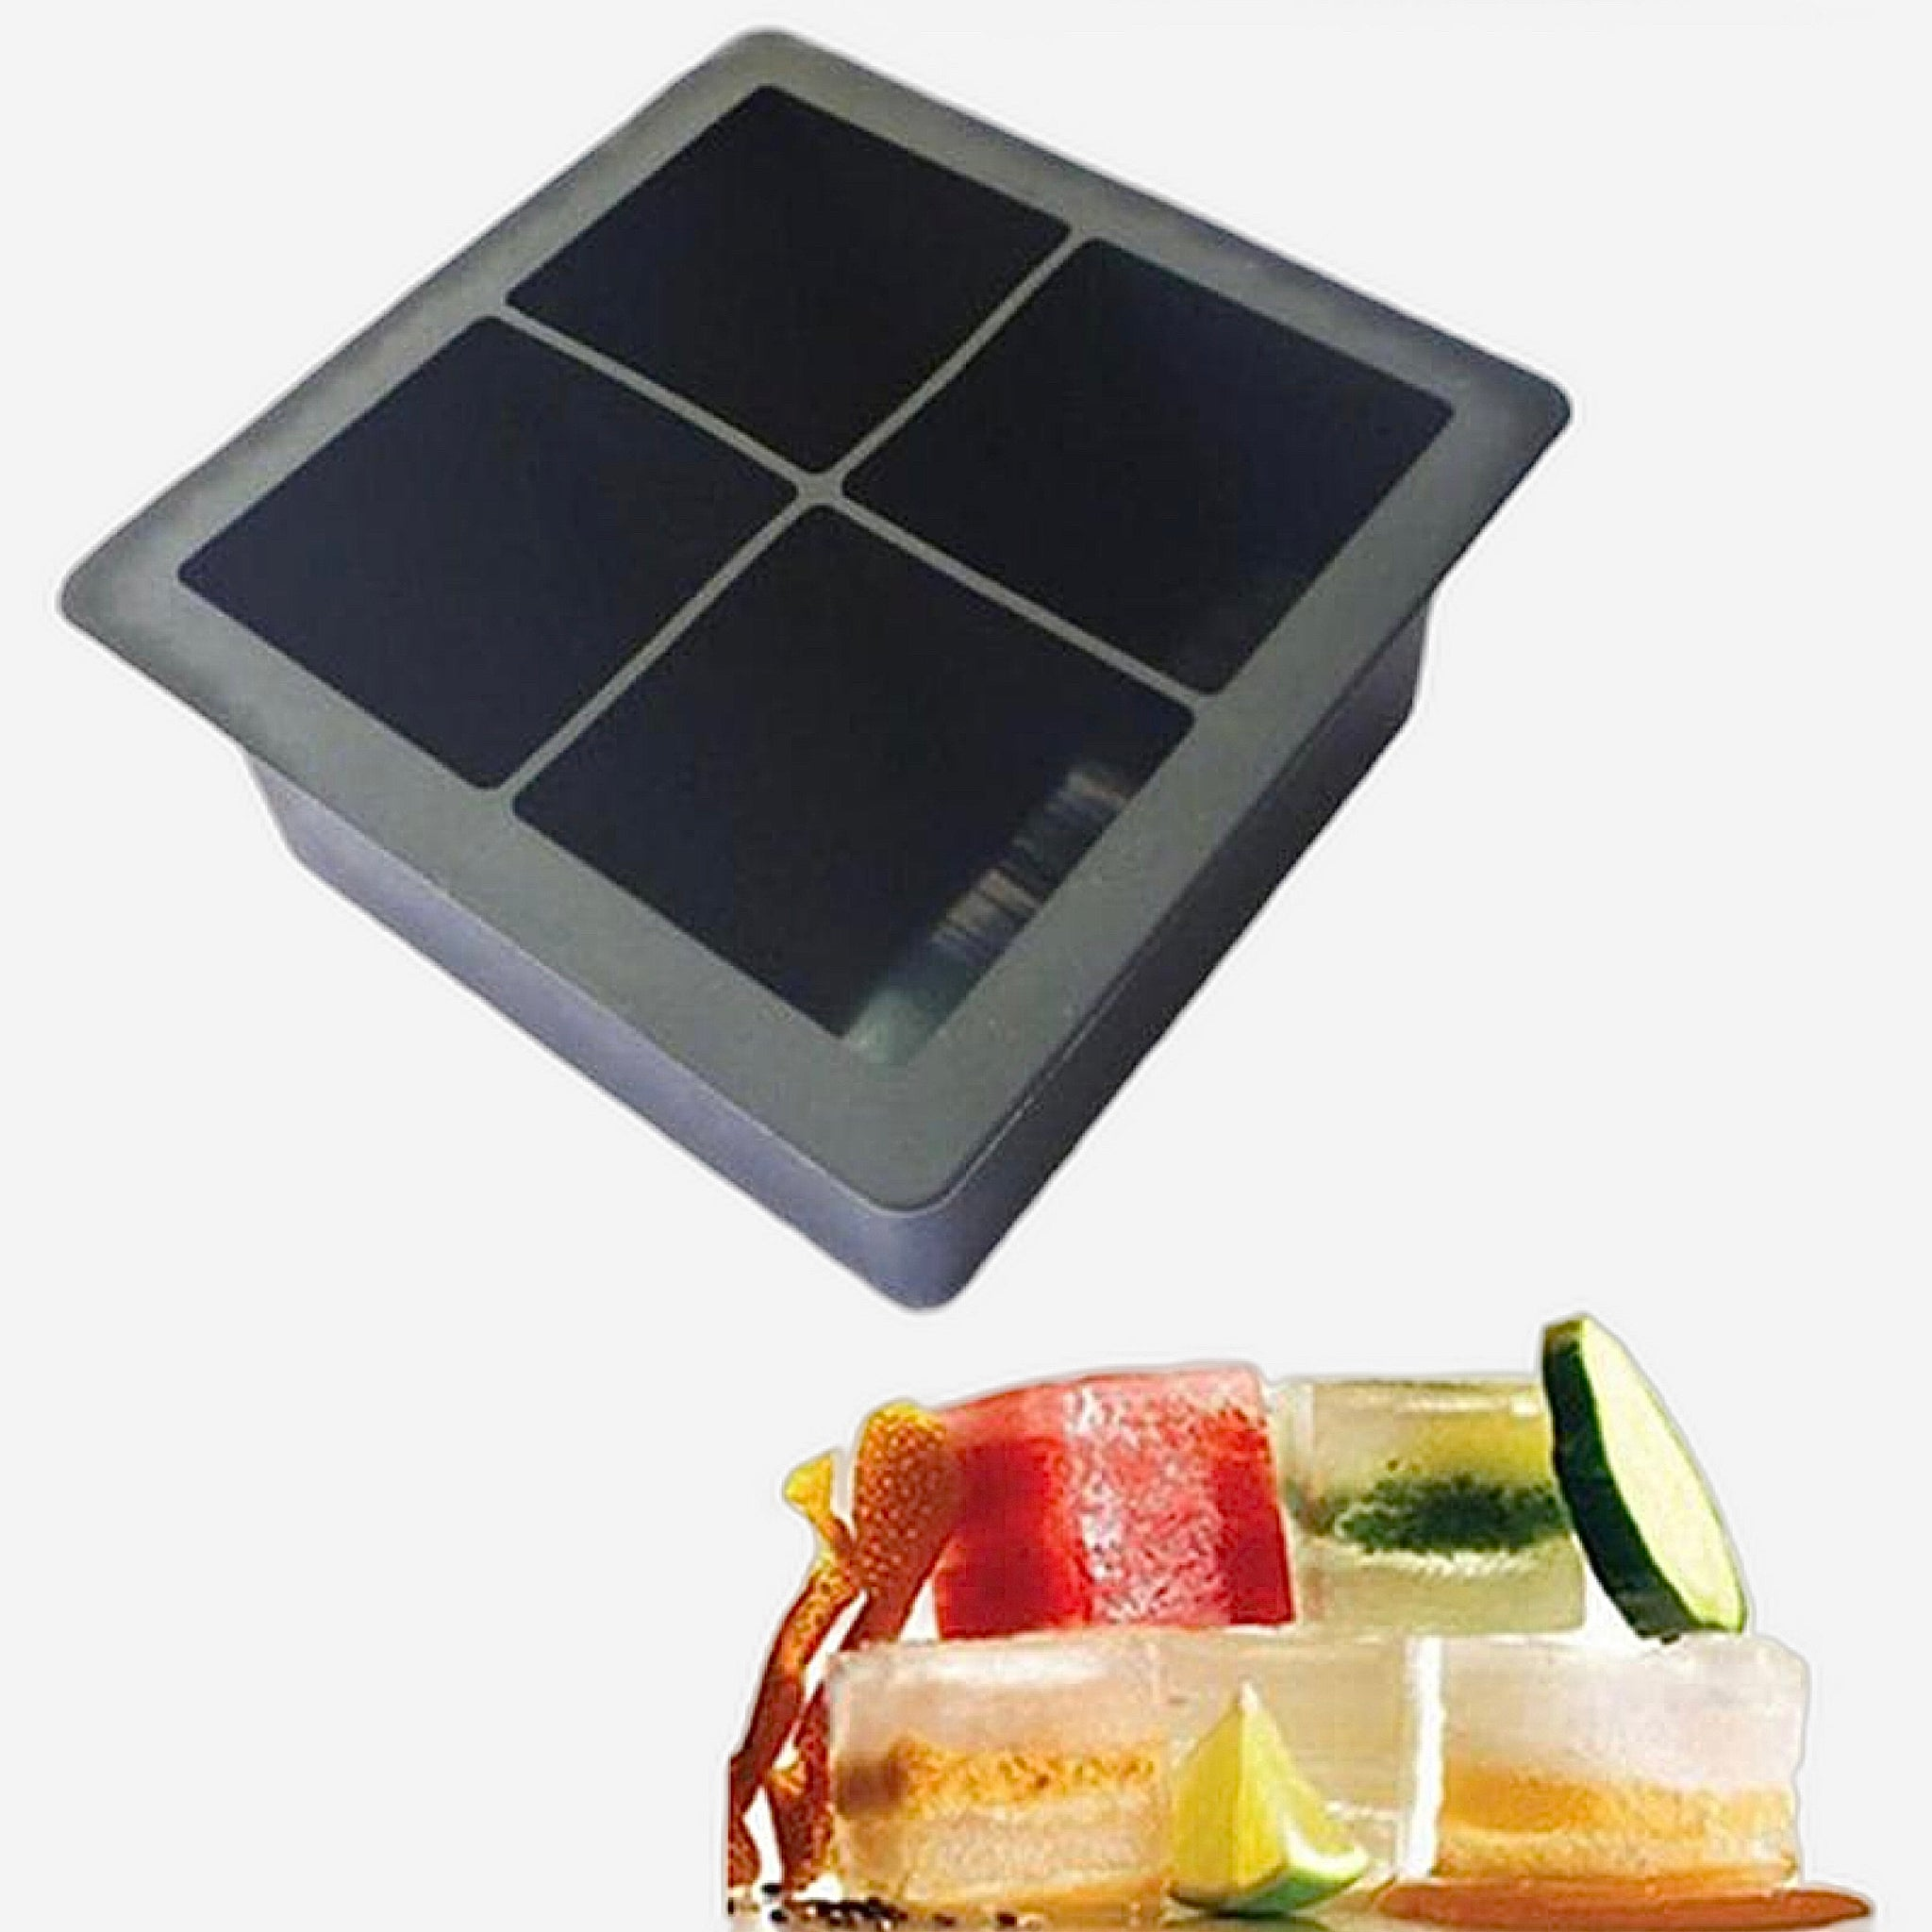 Extra Large Ice Cube Tray 4-Cell  Big Size Black Silicone Square Mould Tubs Trays Style Trend